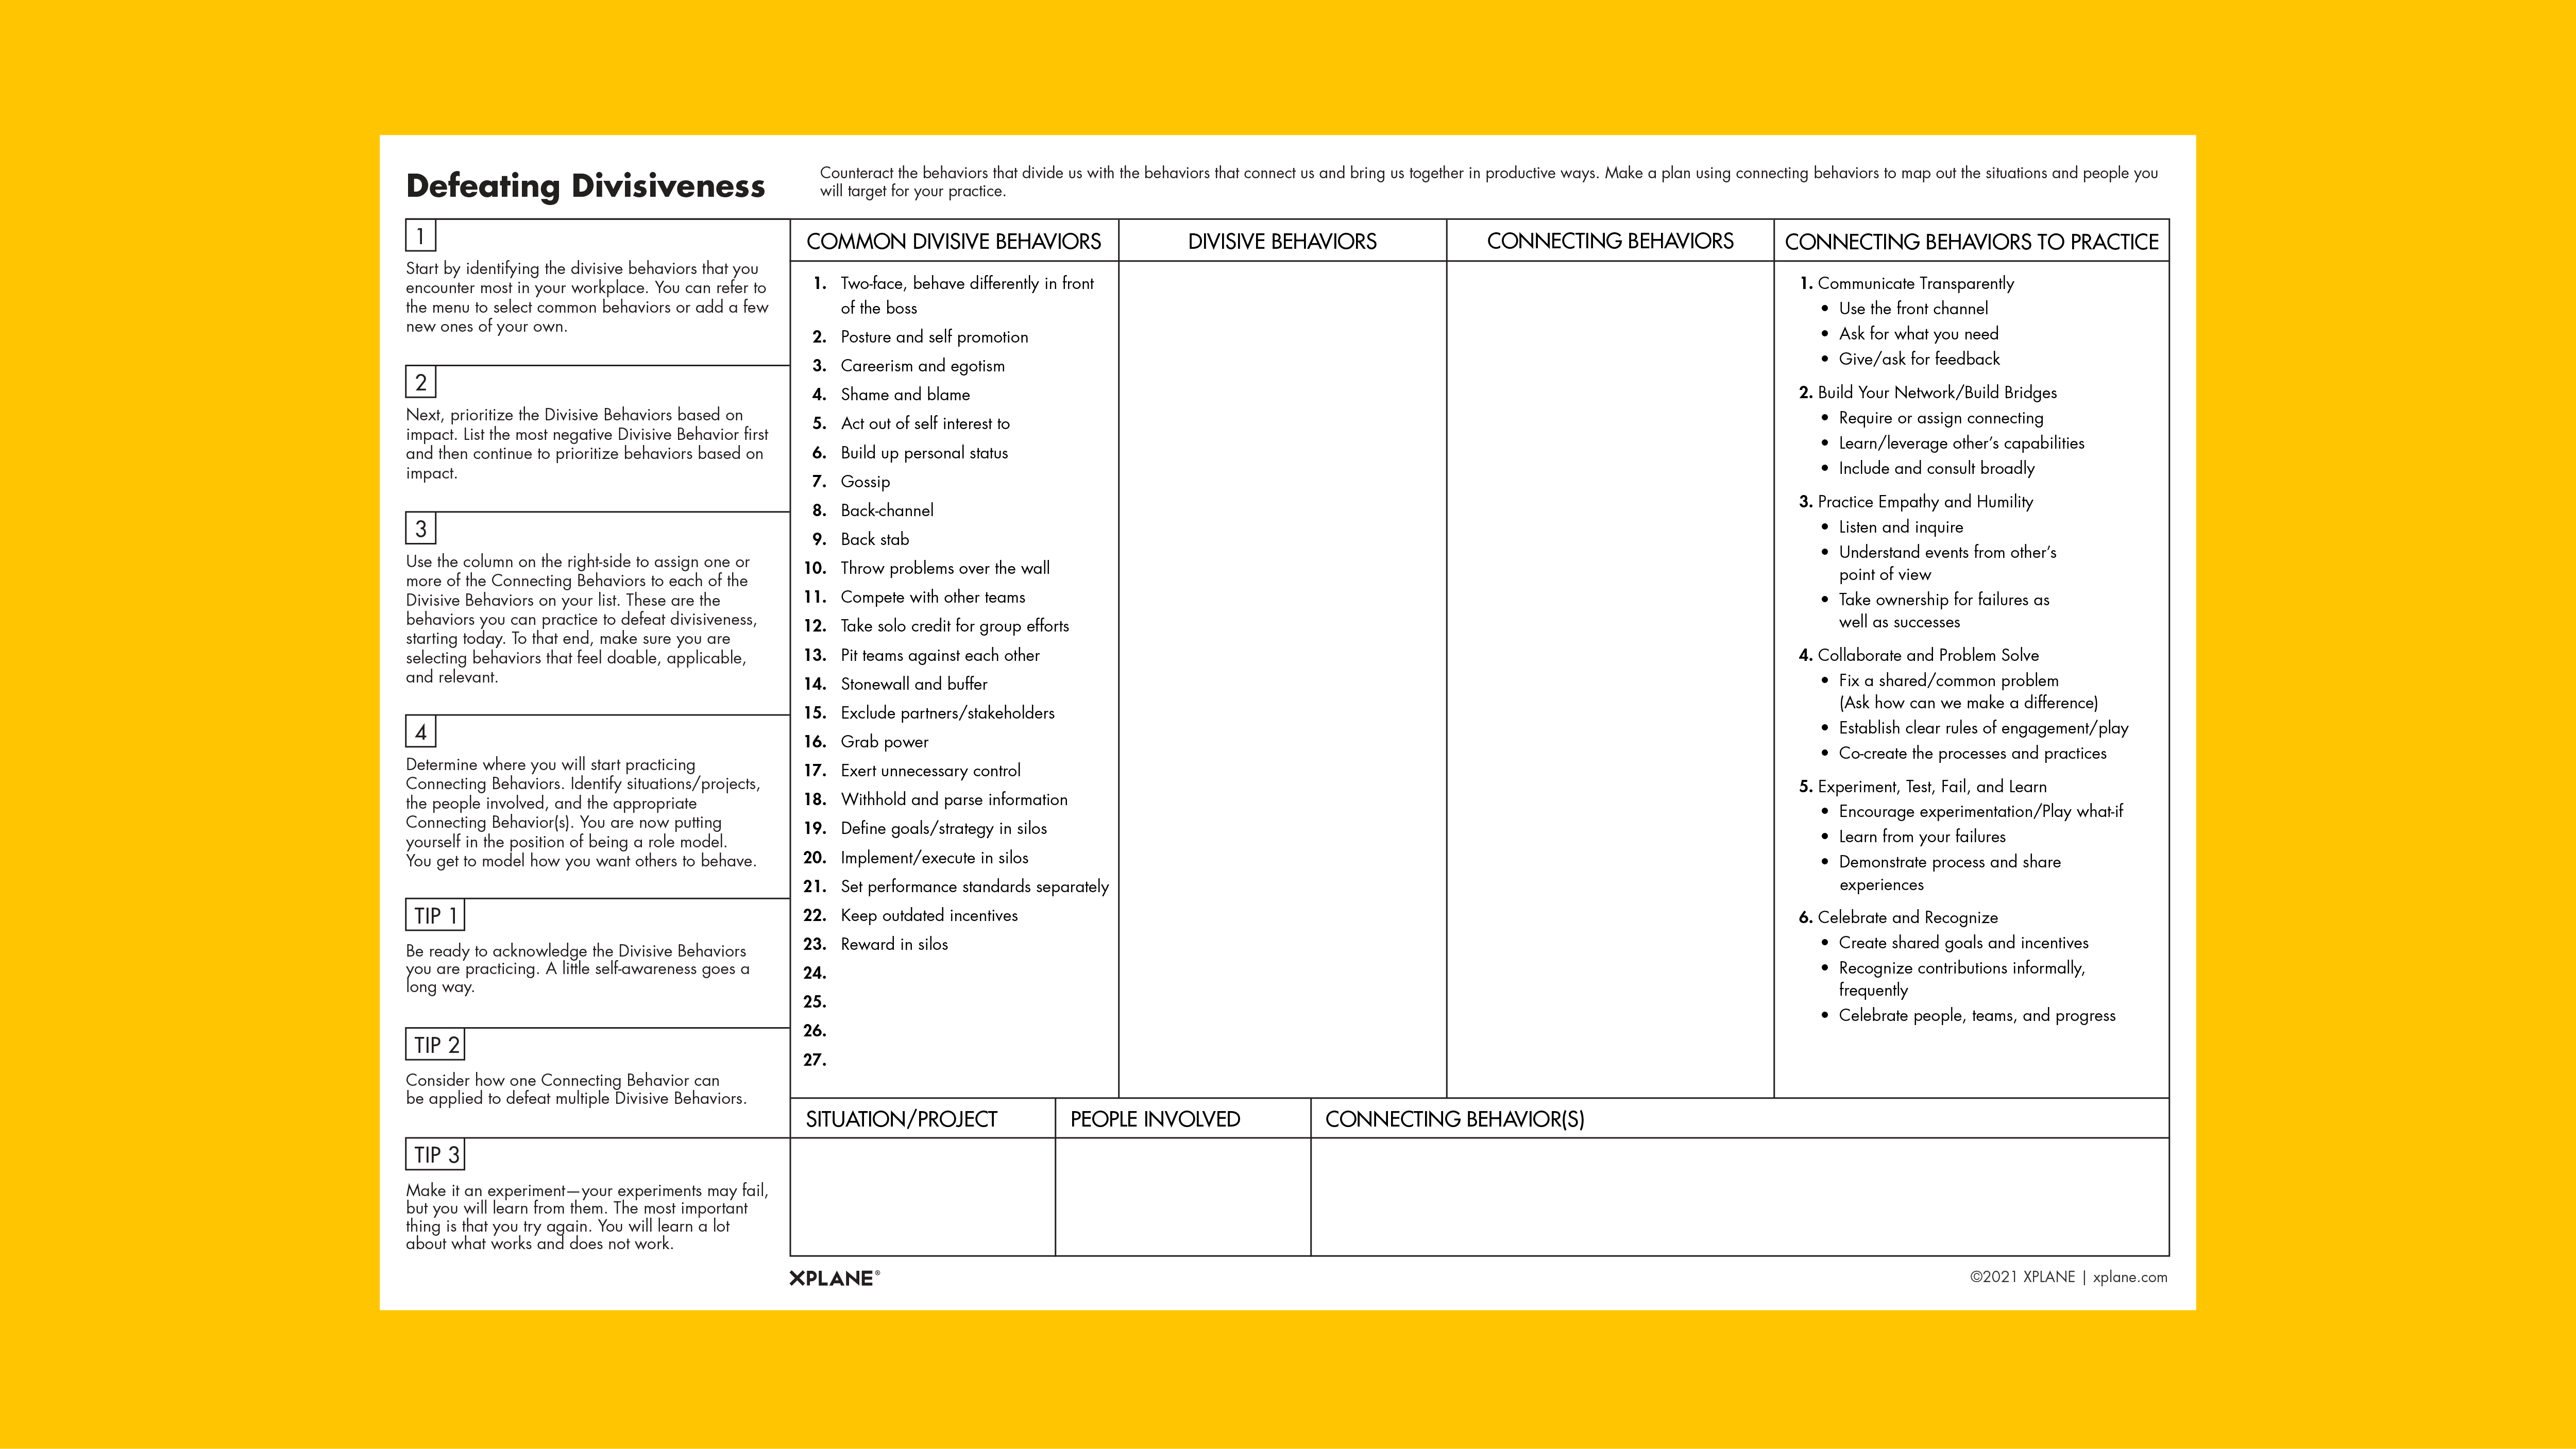 Defeating Divisiveness worksheet against a yellow background